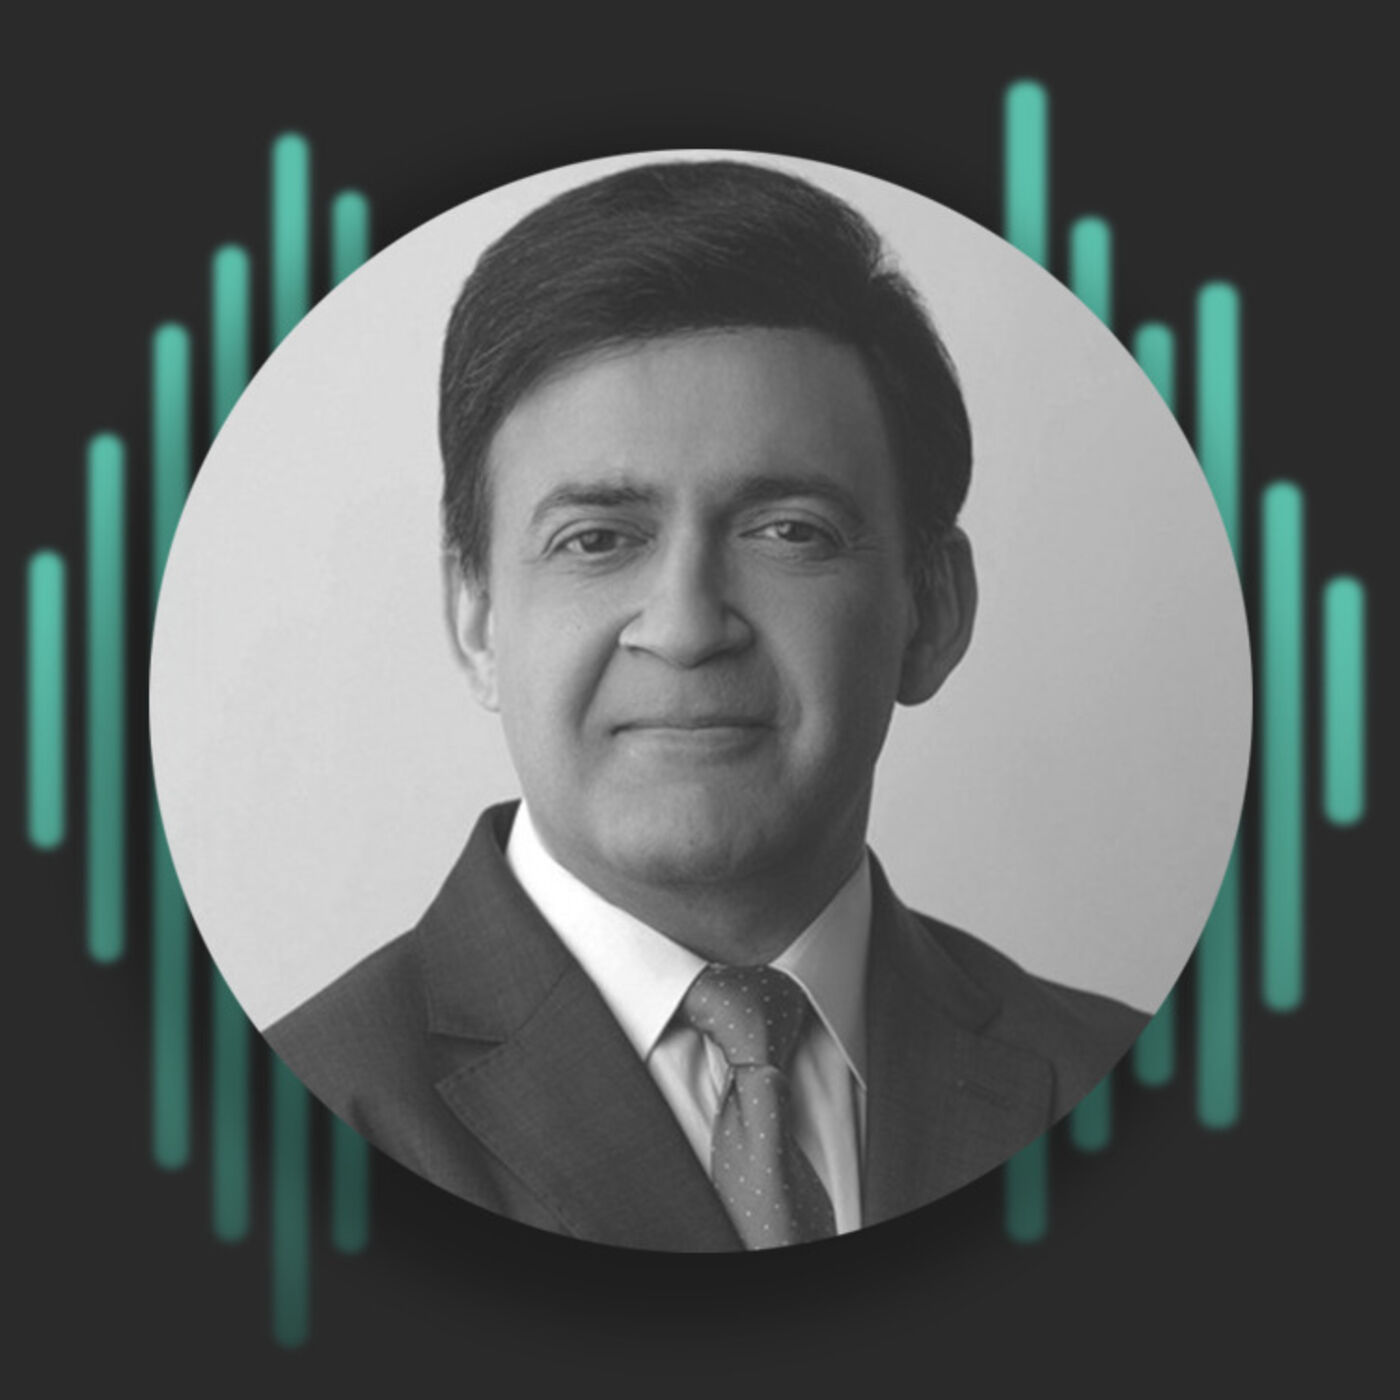 Episode 16: Humayun Chaudhry D.O. President of the Federation of State Medical Boards